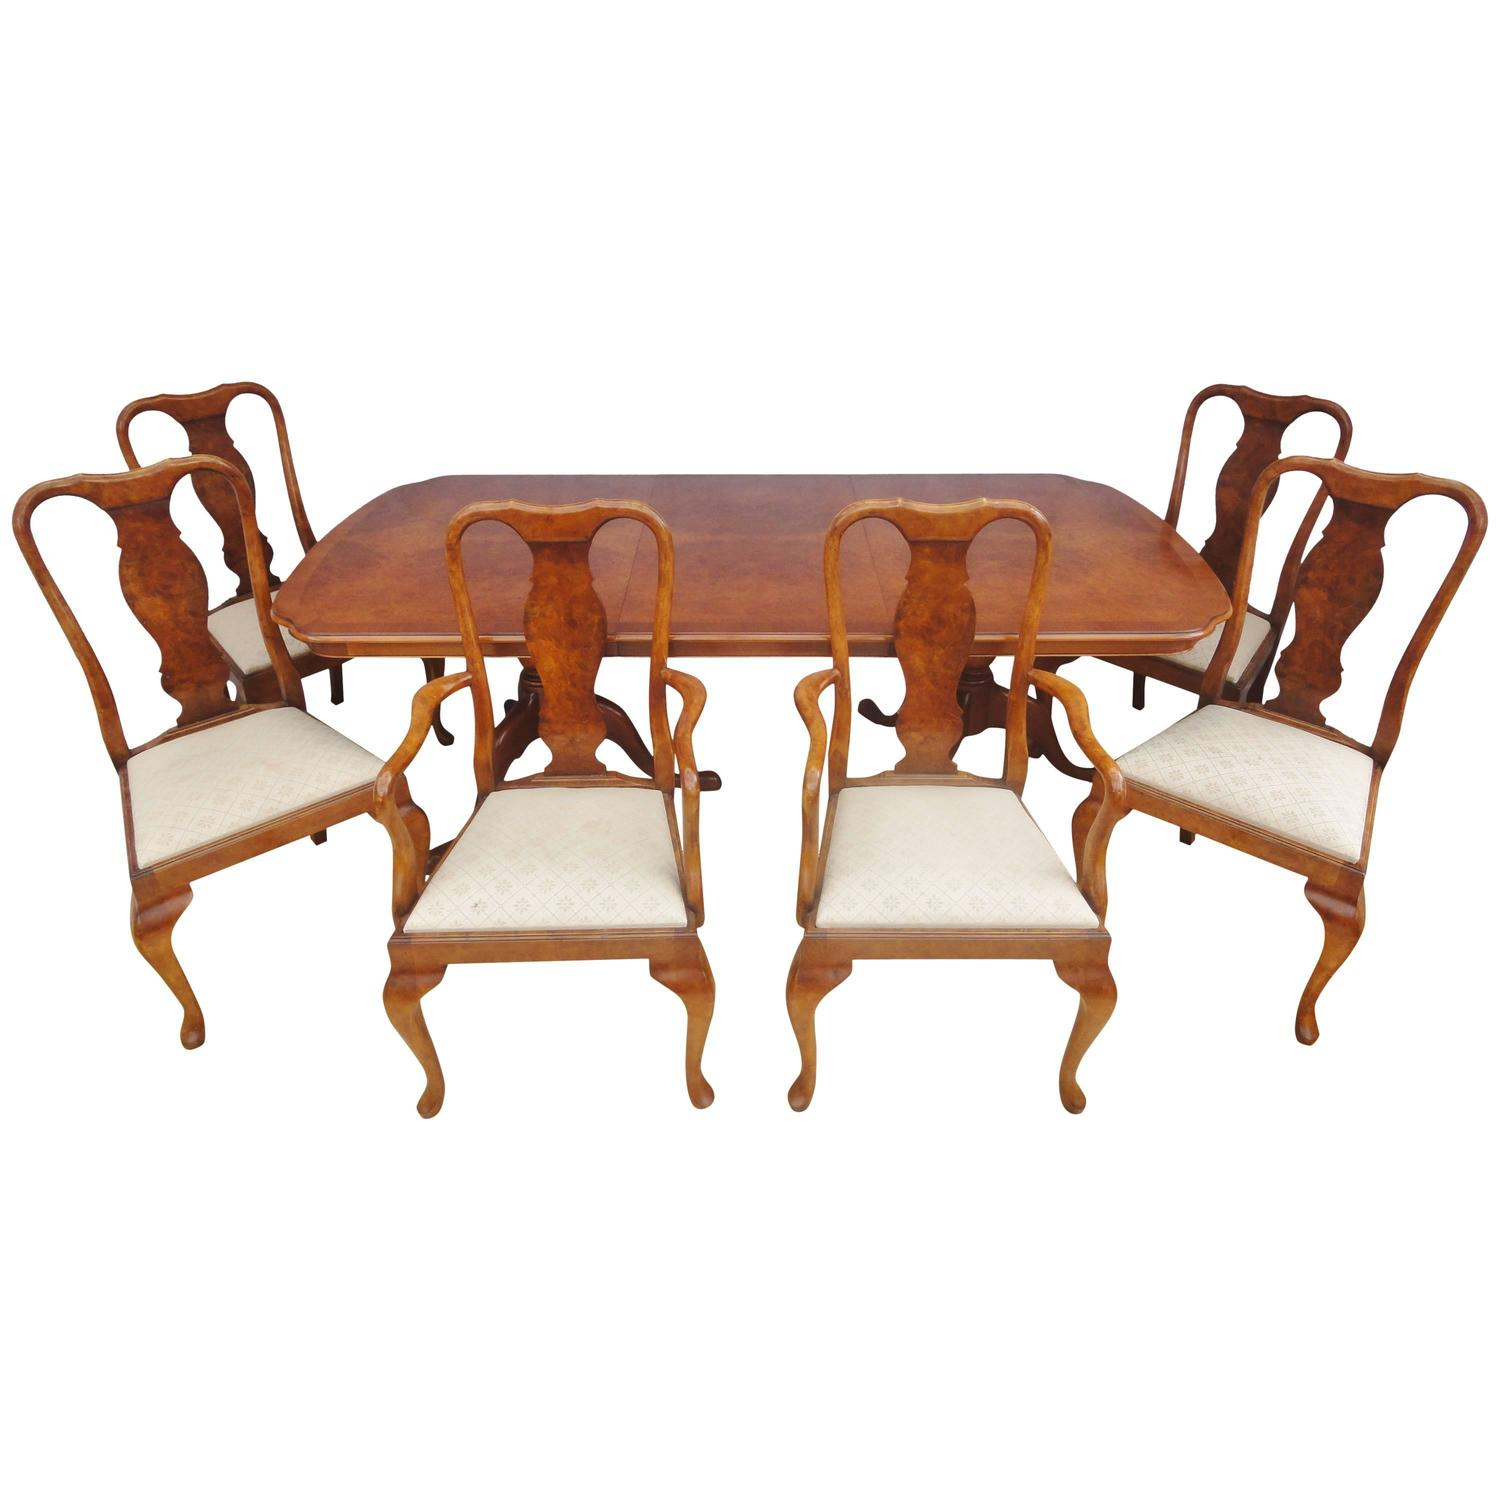 Antique Style Queen Anne Burr Walnut Dining Table And Six Matching Chairs At